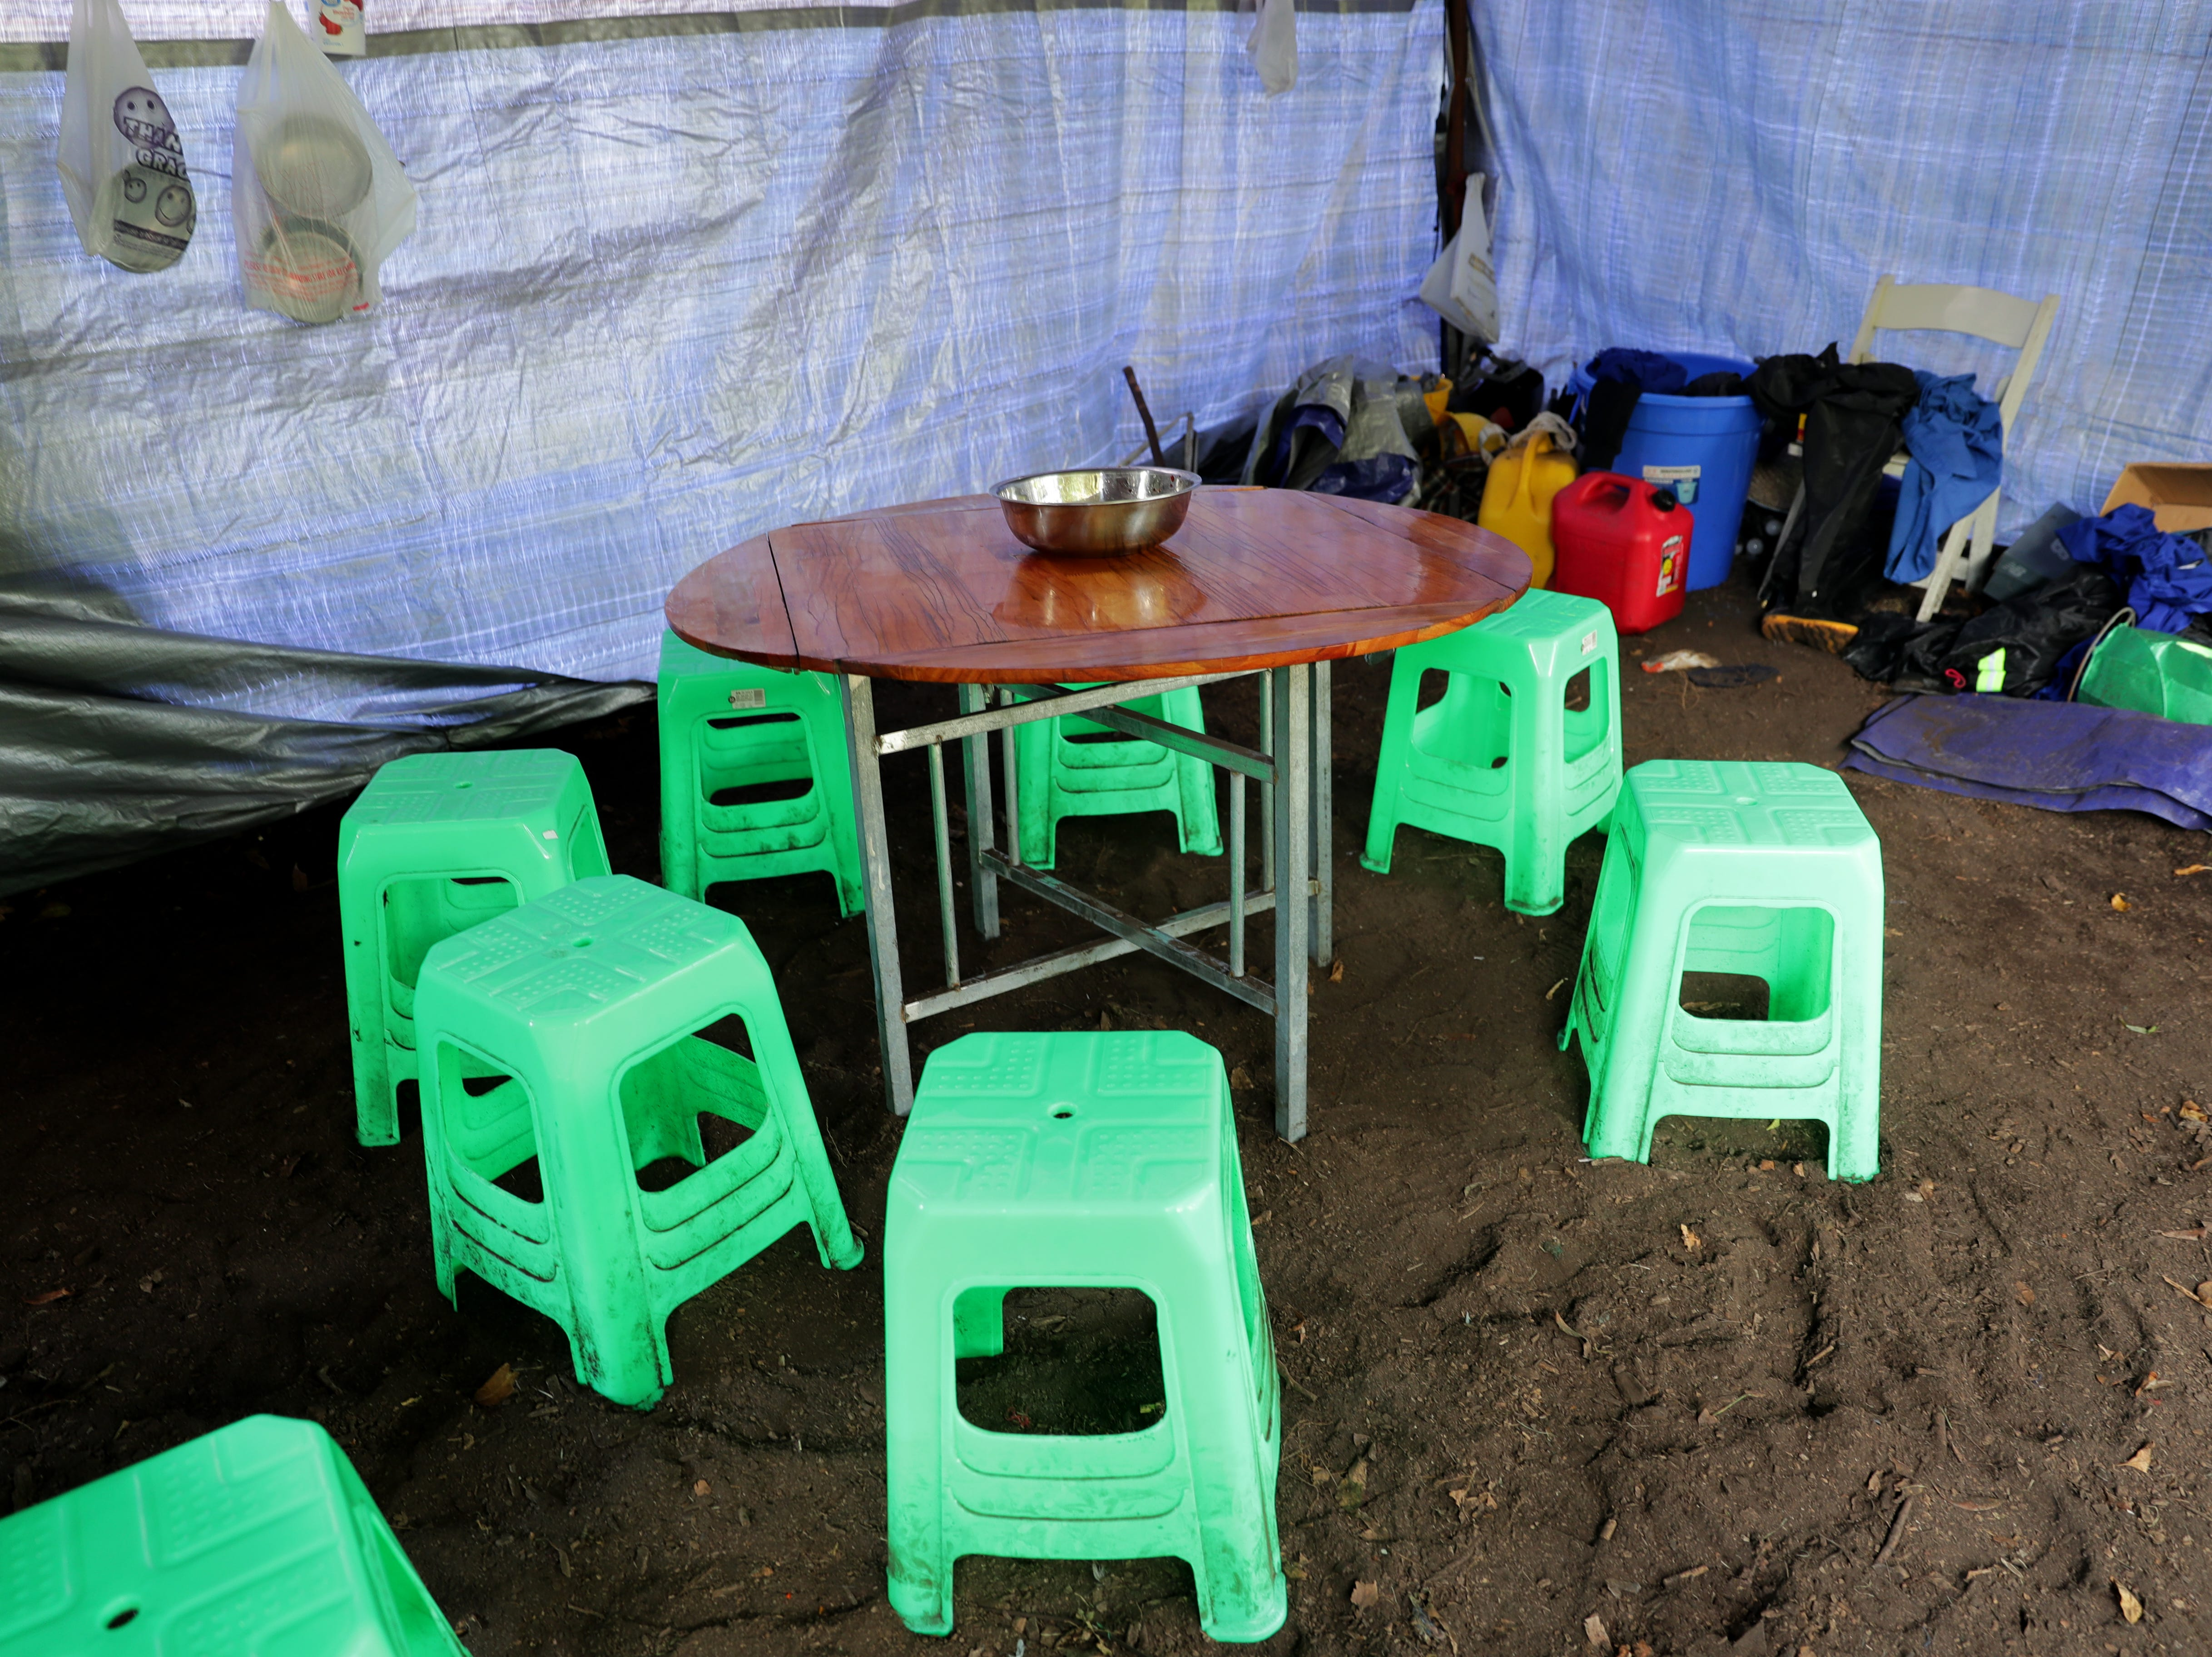 A table and chairs are set up in the Chinese workers' cook tent on the grounds near the exhibit.